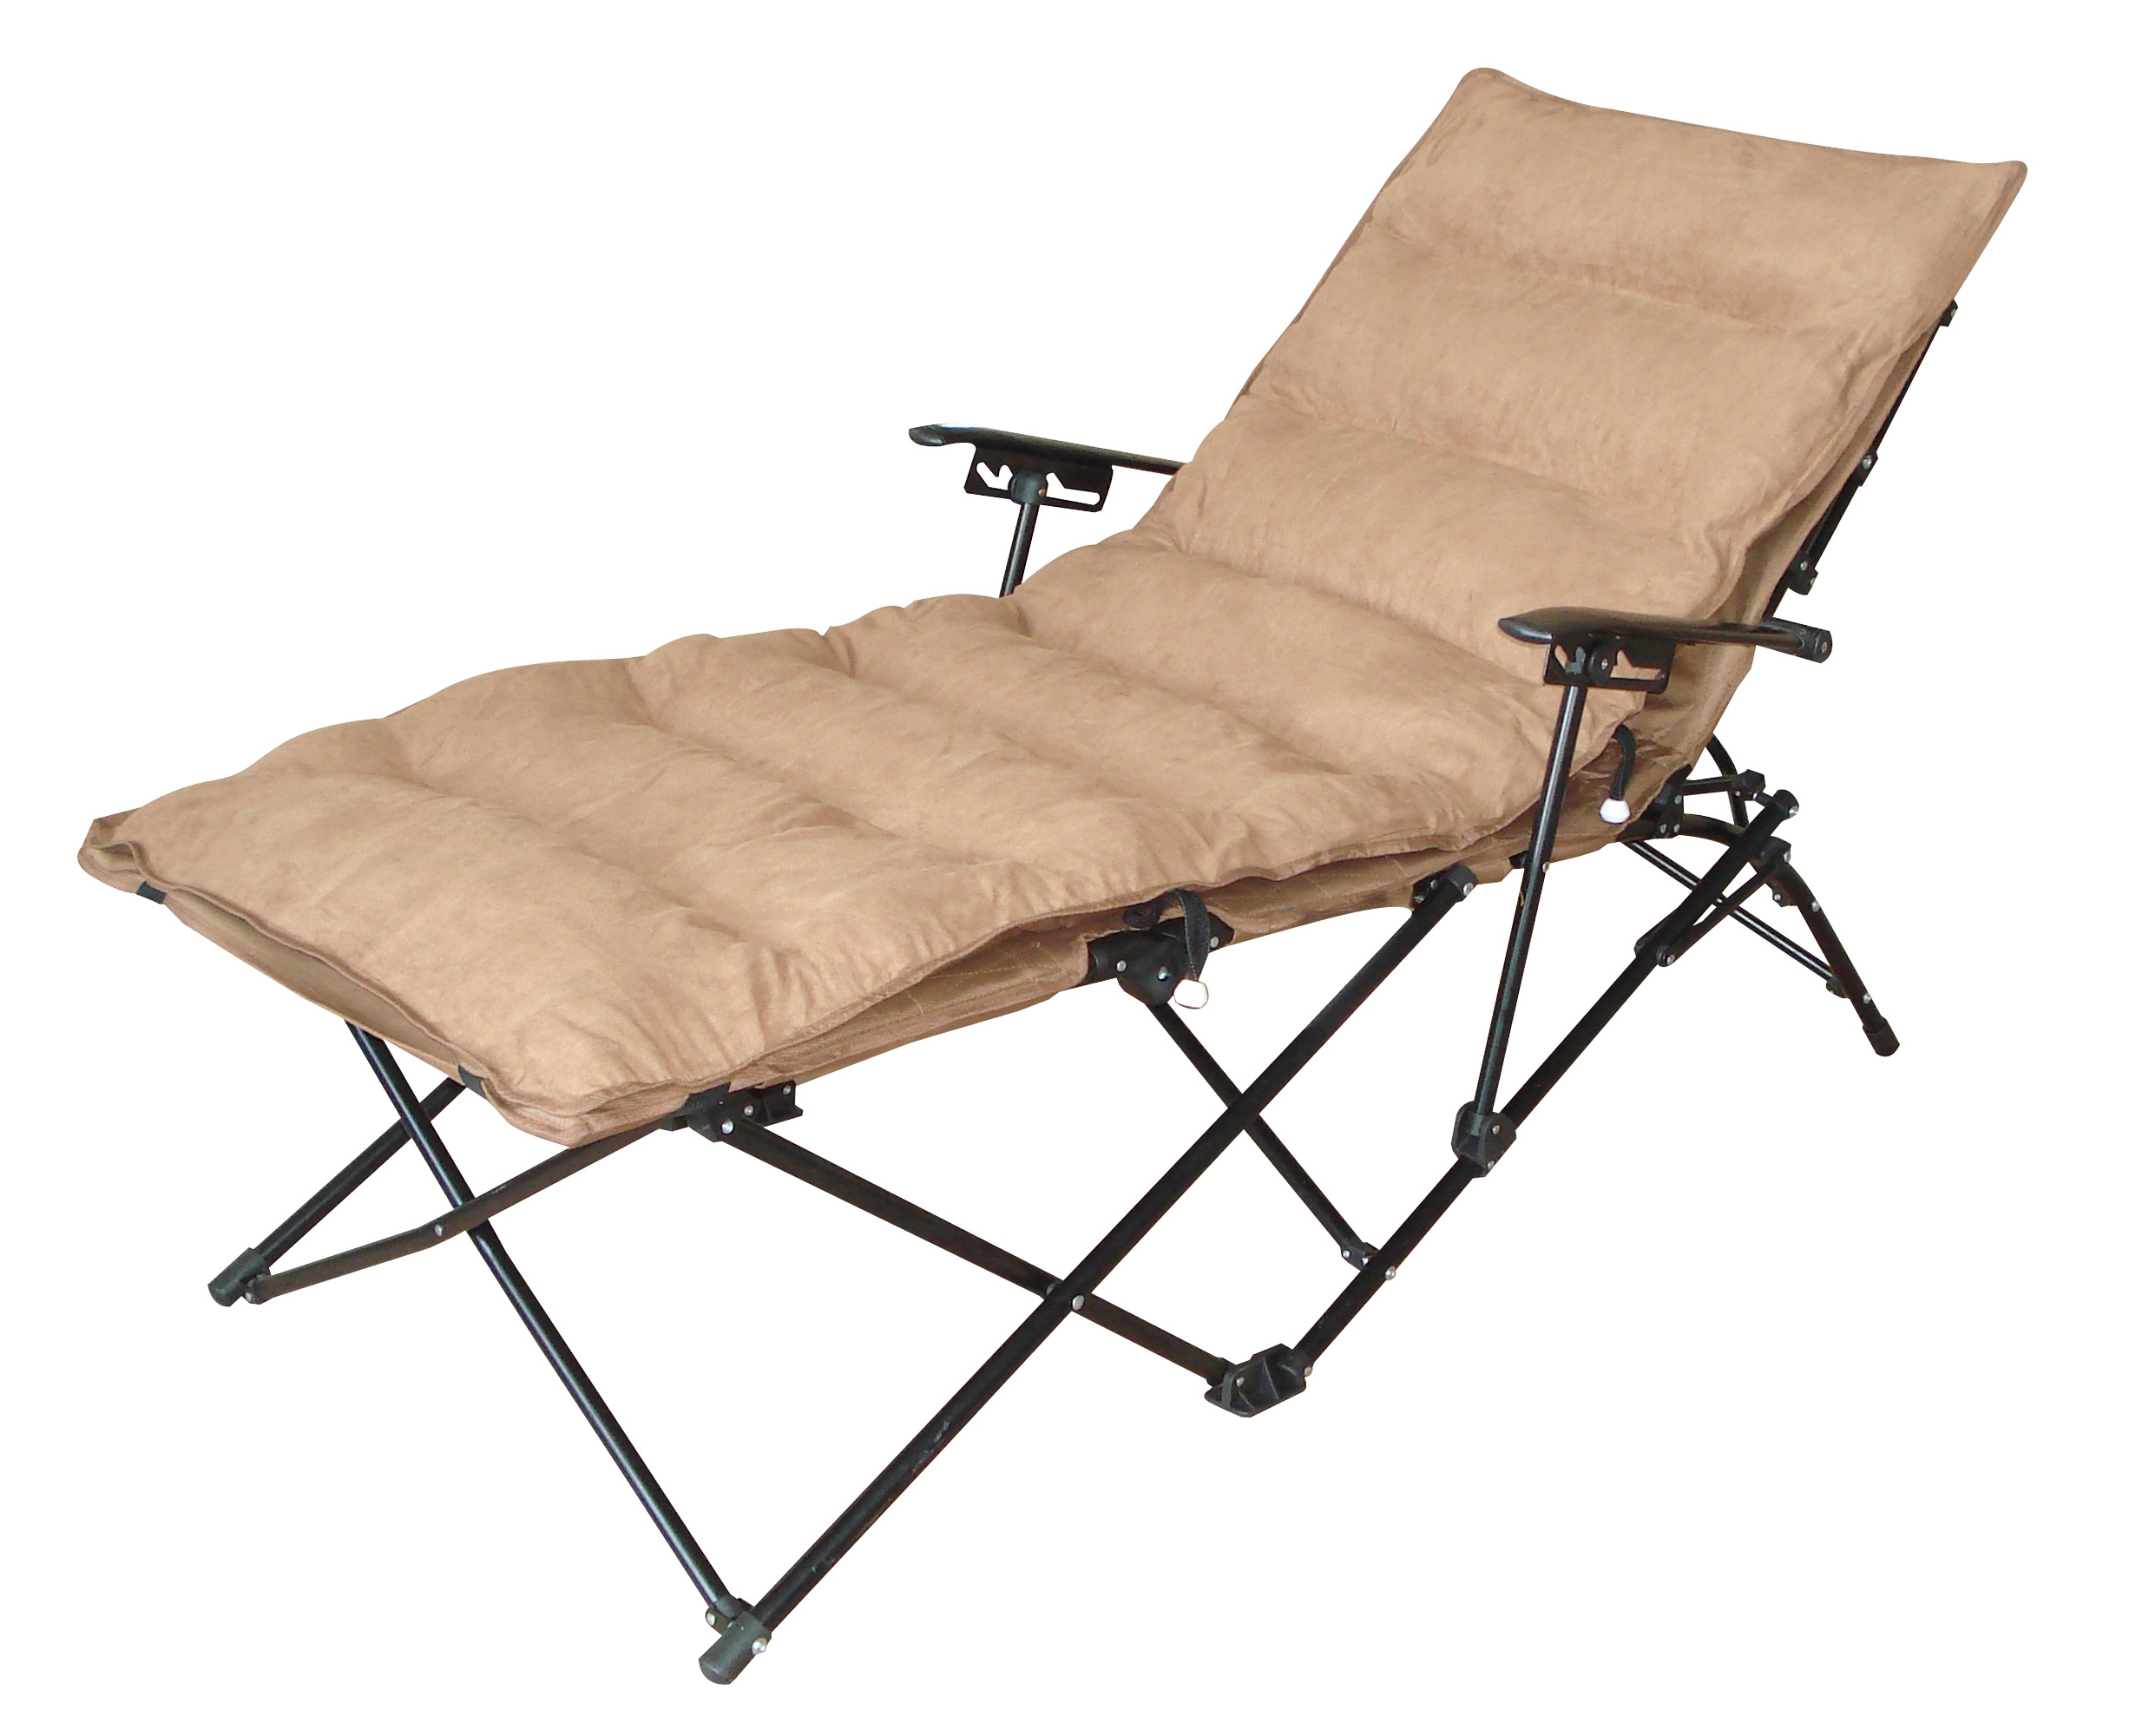 Outdoor : Folding Chaise Lounge Chair Jelly Lounge Chair Zero With Regard To Recent Lightweight Chaise Lounge Chairs (View 4 of 15)